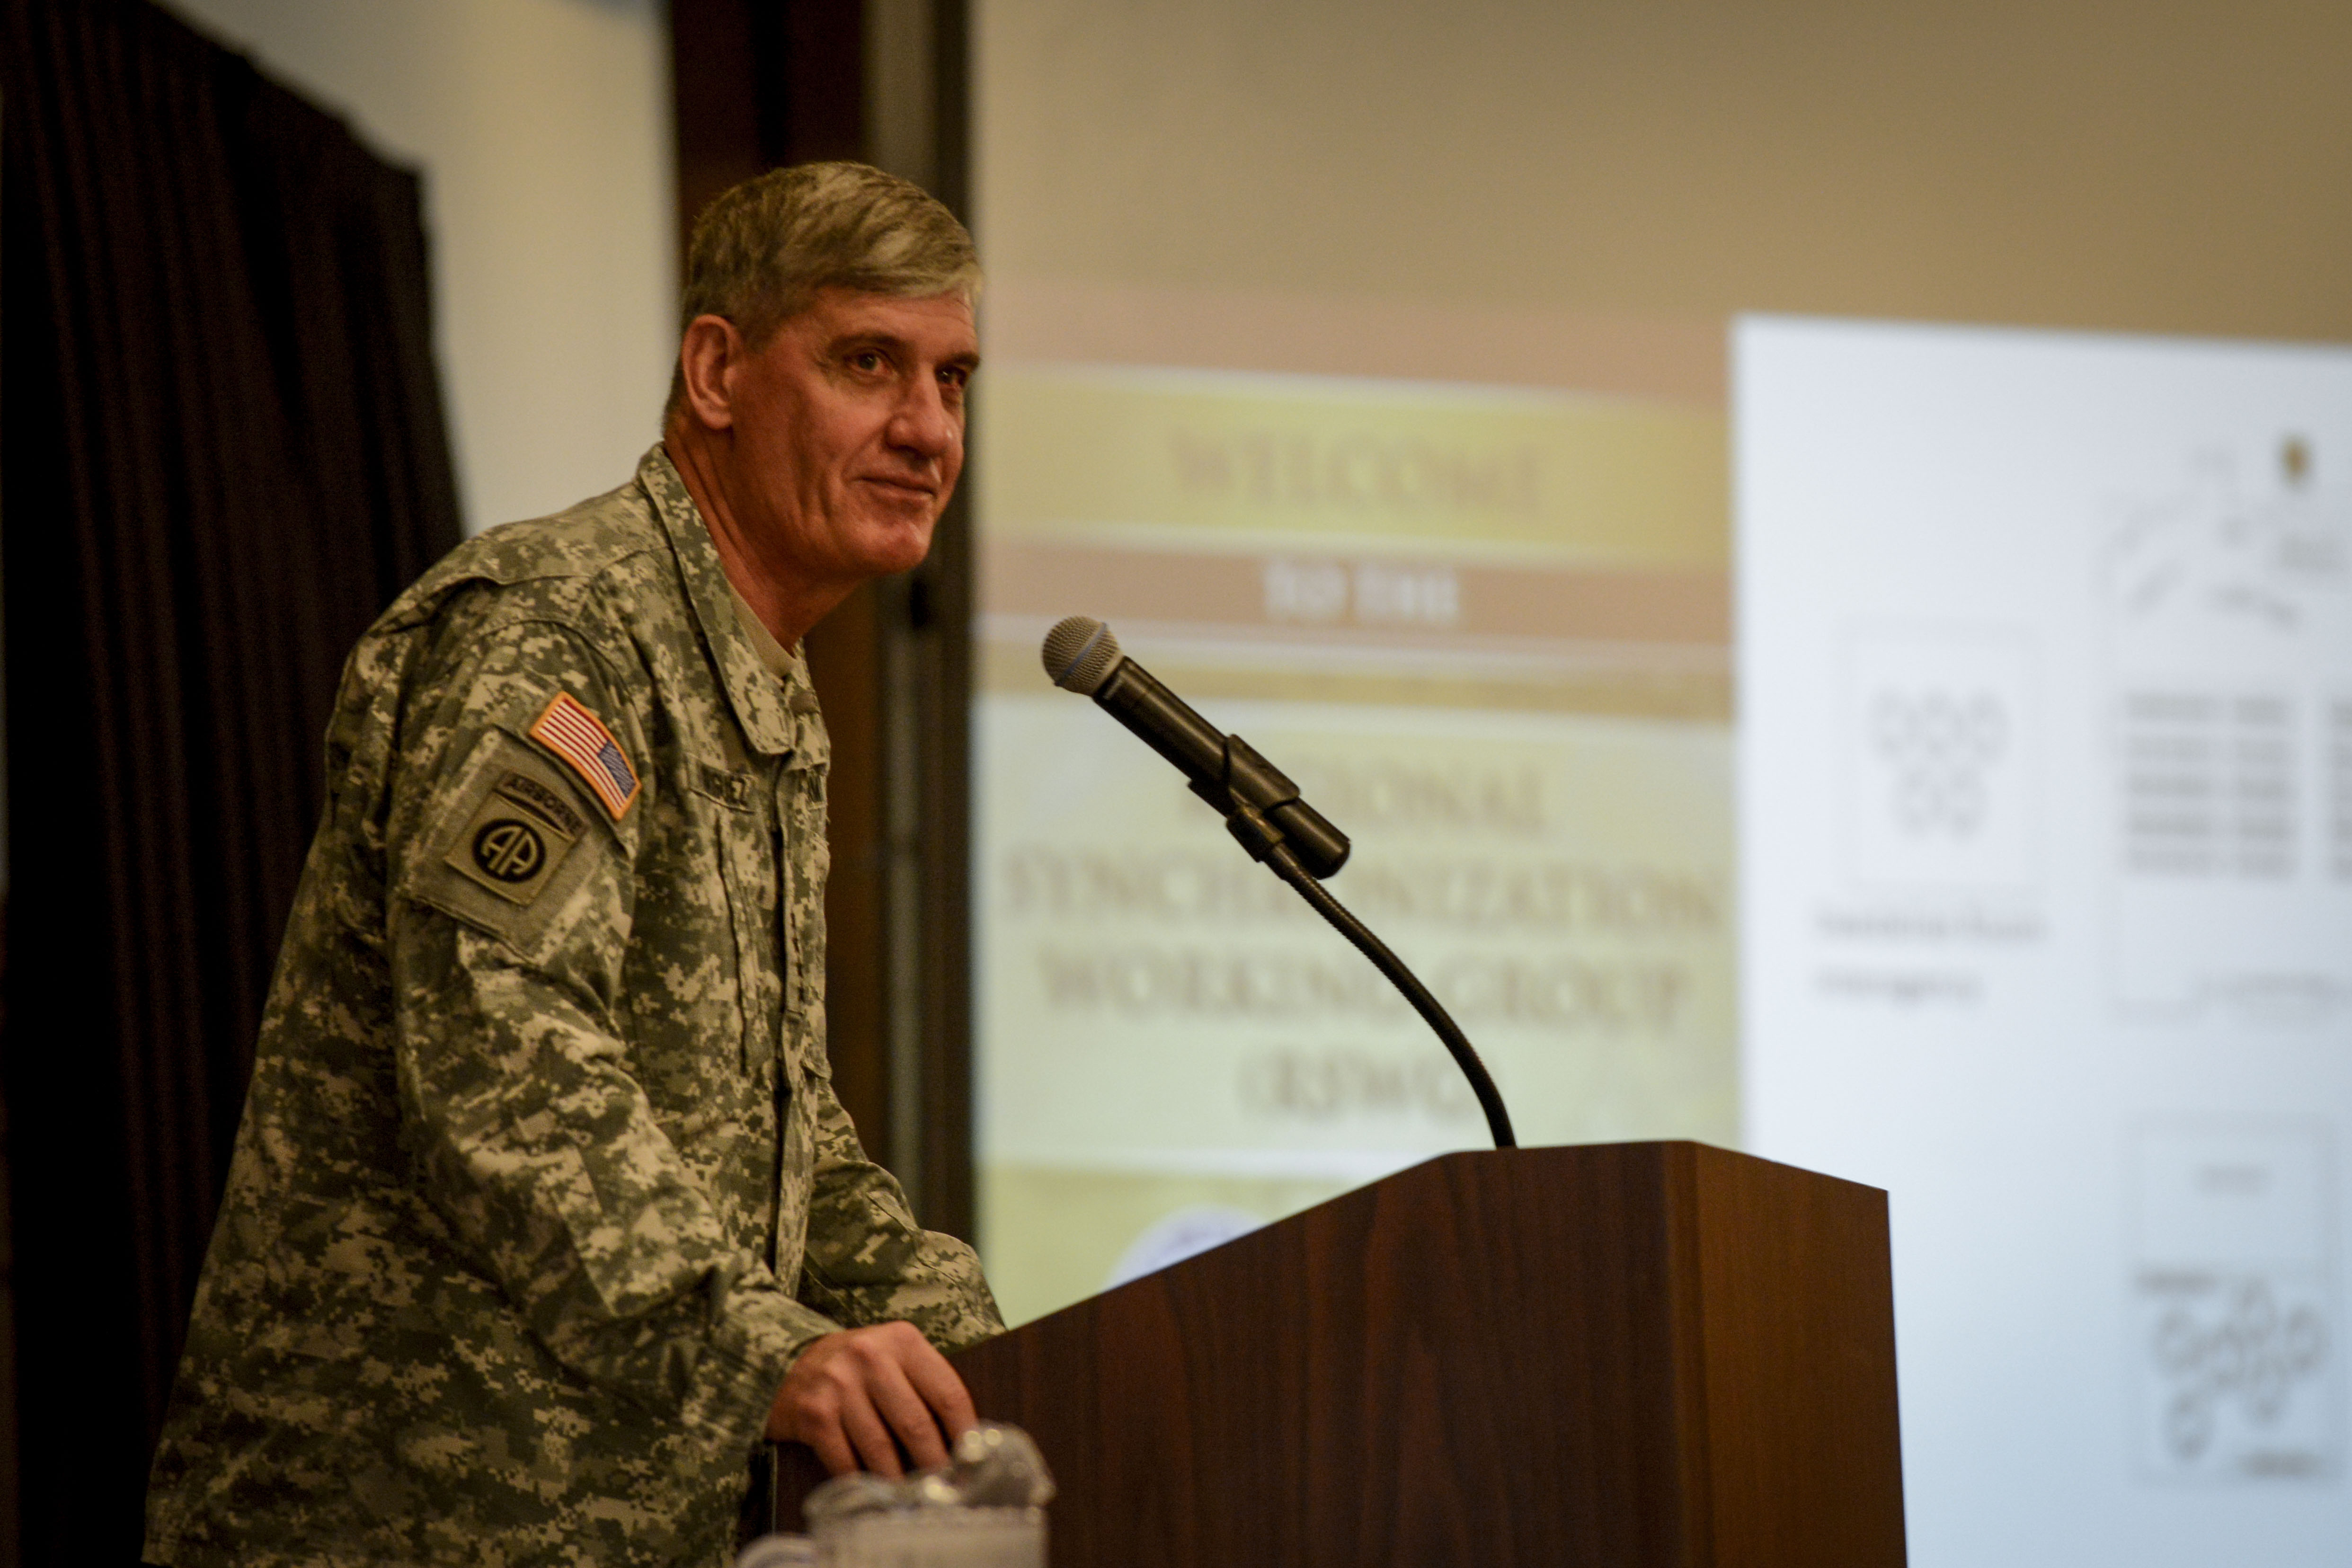 U.S. Army Gen. David M. Rodriguez, U.S. Africa Command commander, gives opening comments at the annual Regional Synchronization Working Group conference Oct. 26, 2015, at Ramstein Air Base, Germany. More than 200 U.S. service members from AFRICOM and NATO partners attended the conference to align their focus and meet the intent of the theater campaign plan. (U.S. Air Force photo/Senior Airman Nicole Sikorski/Released)